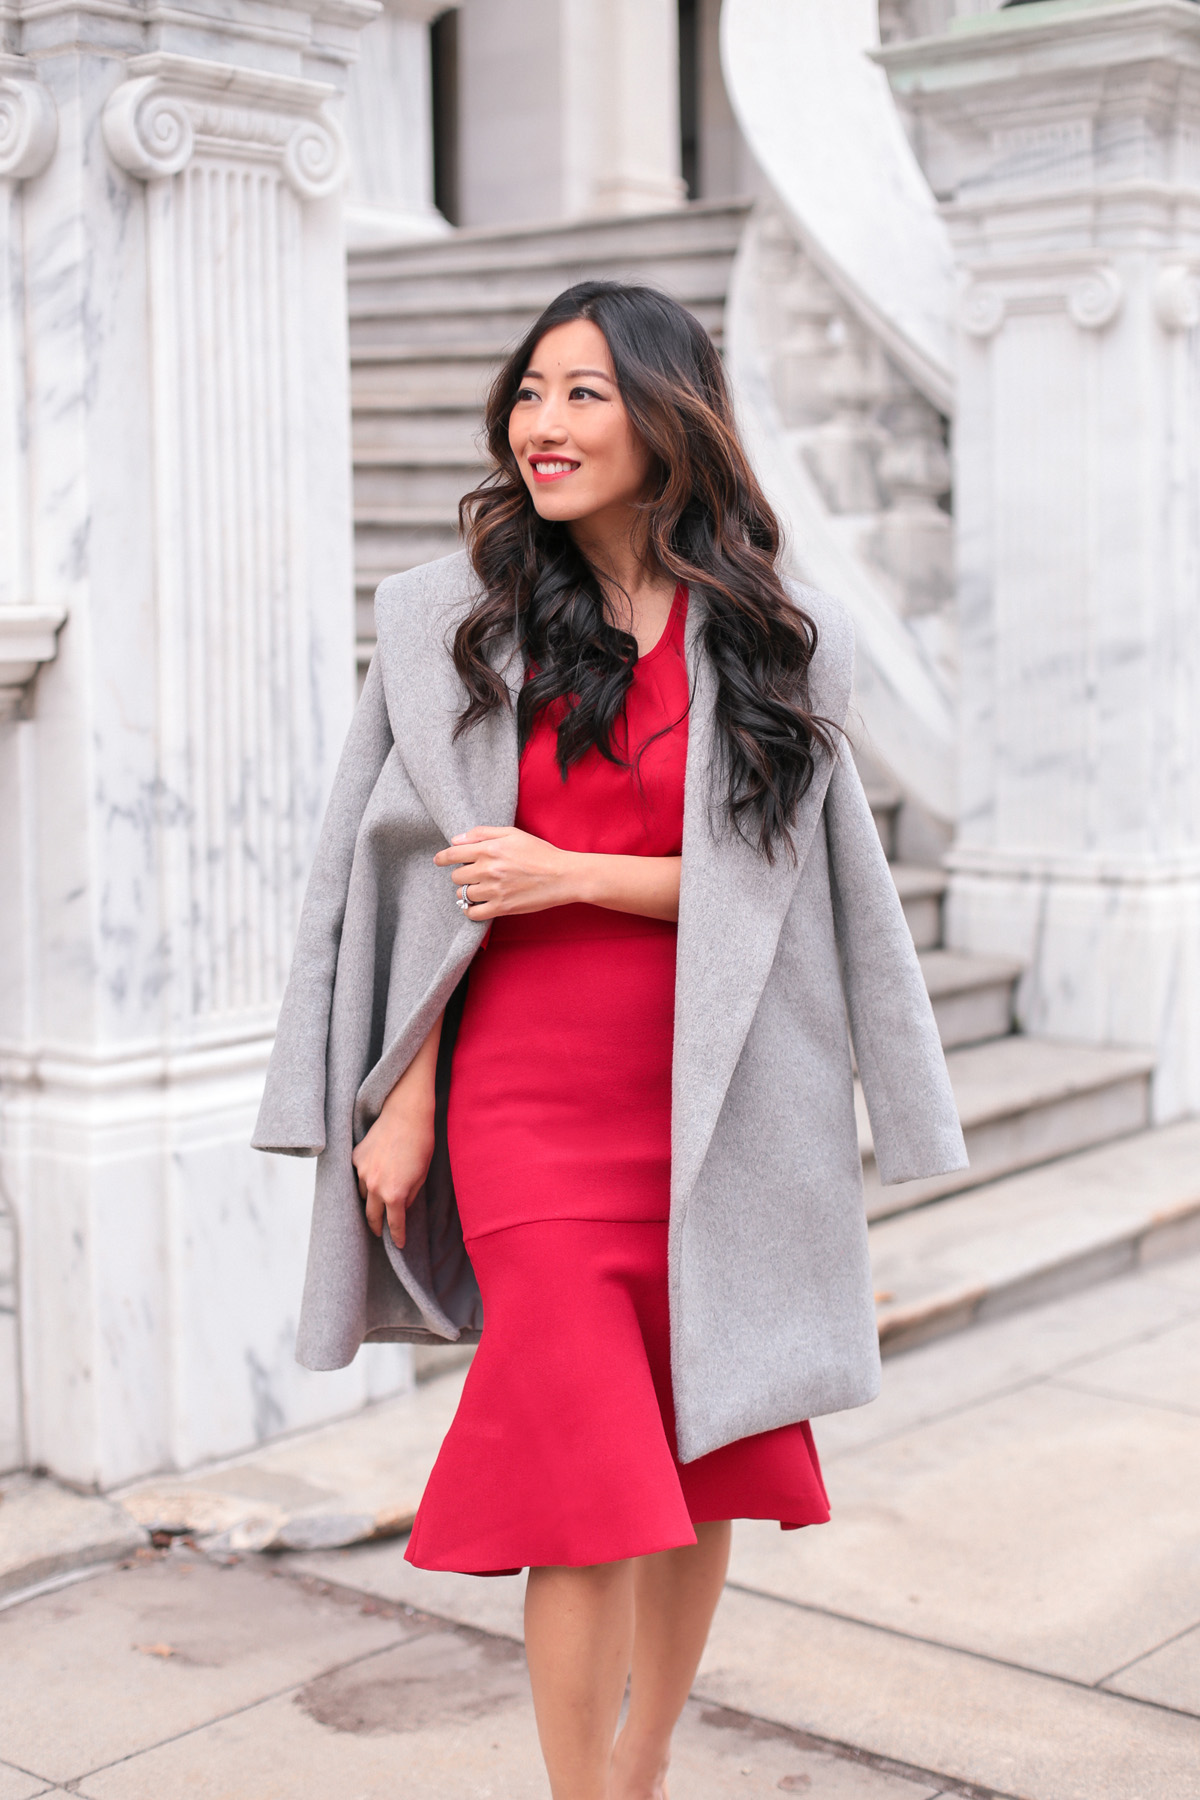 Lady in Red // Flared knit skirt + ruffle sleeve top